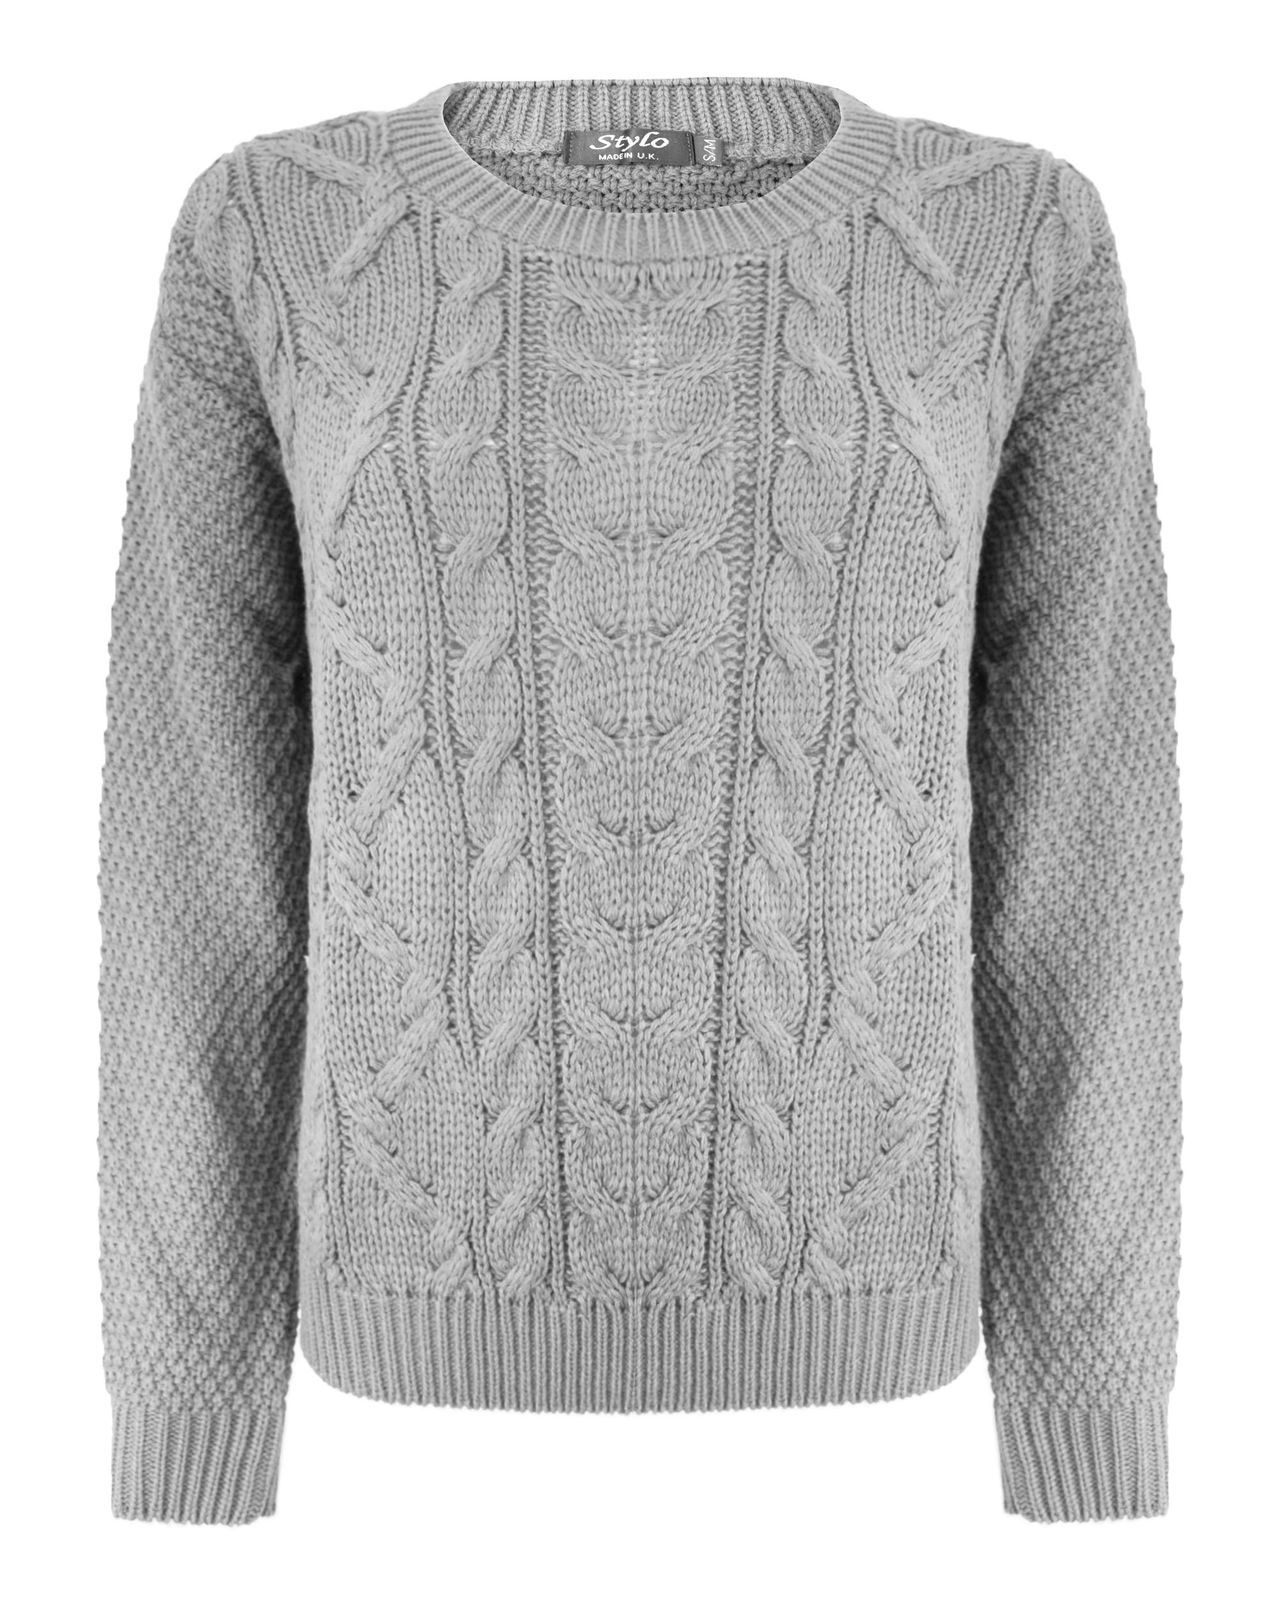 Womens Knit Sweaters – fashionable cuts and designs